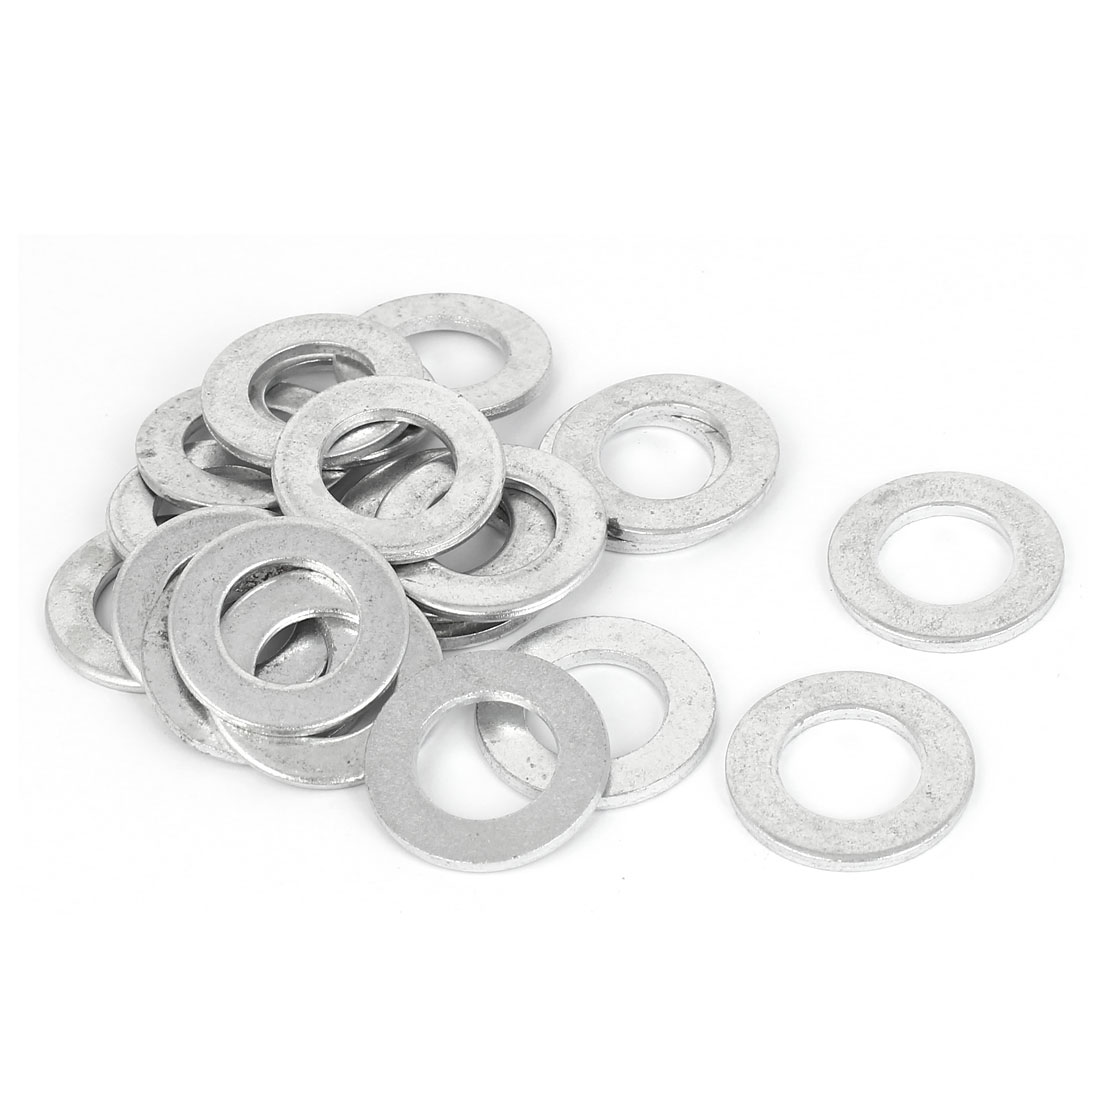 16mm x 30mm Zinc Plated Flat Pads Washers Gaskets Fasteners GB97 20PCS